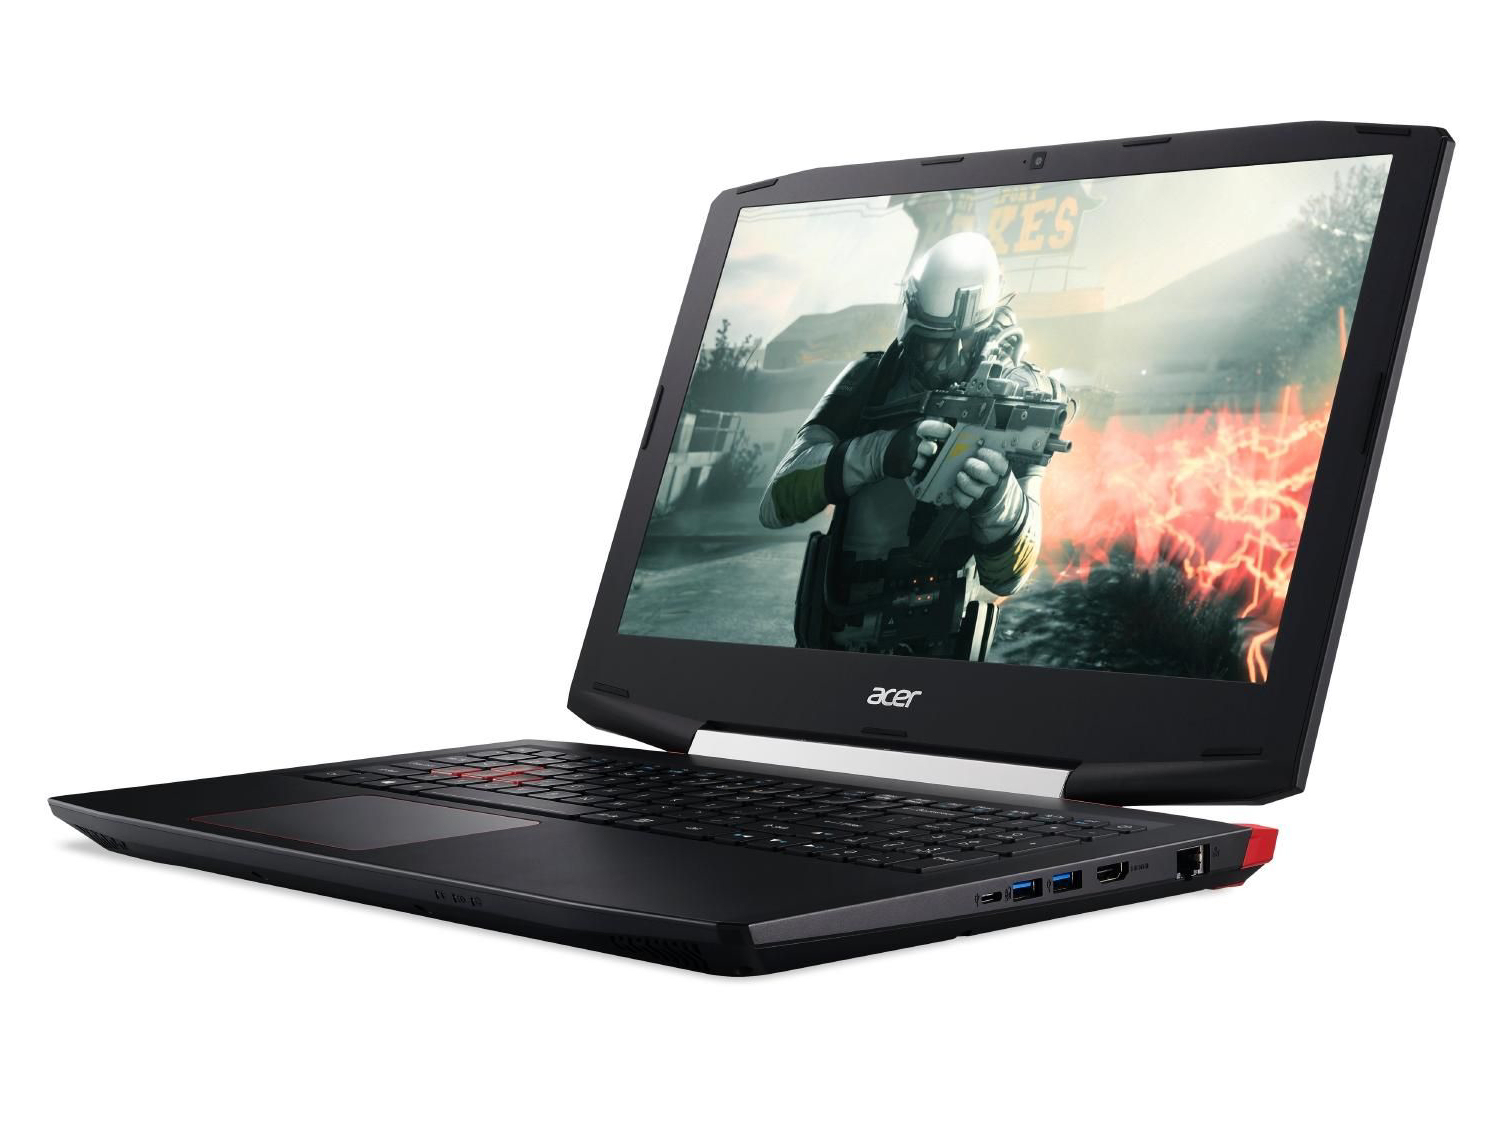 Acer Aspire VX 15 VX5-591G (7300HQ, GTX 1050, Full HD ...